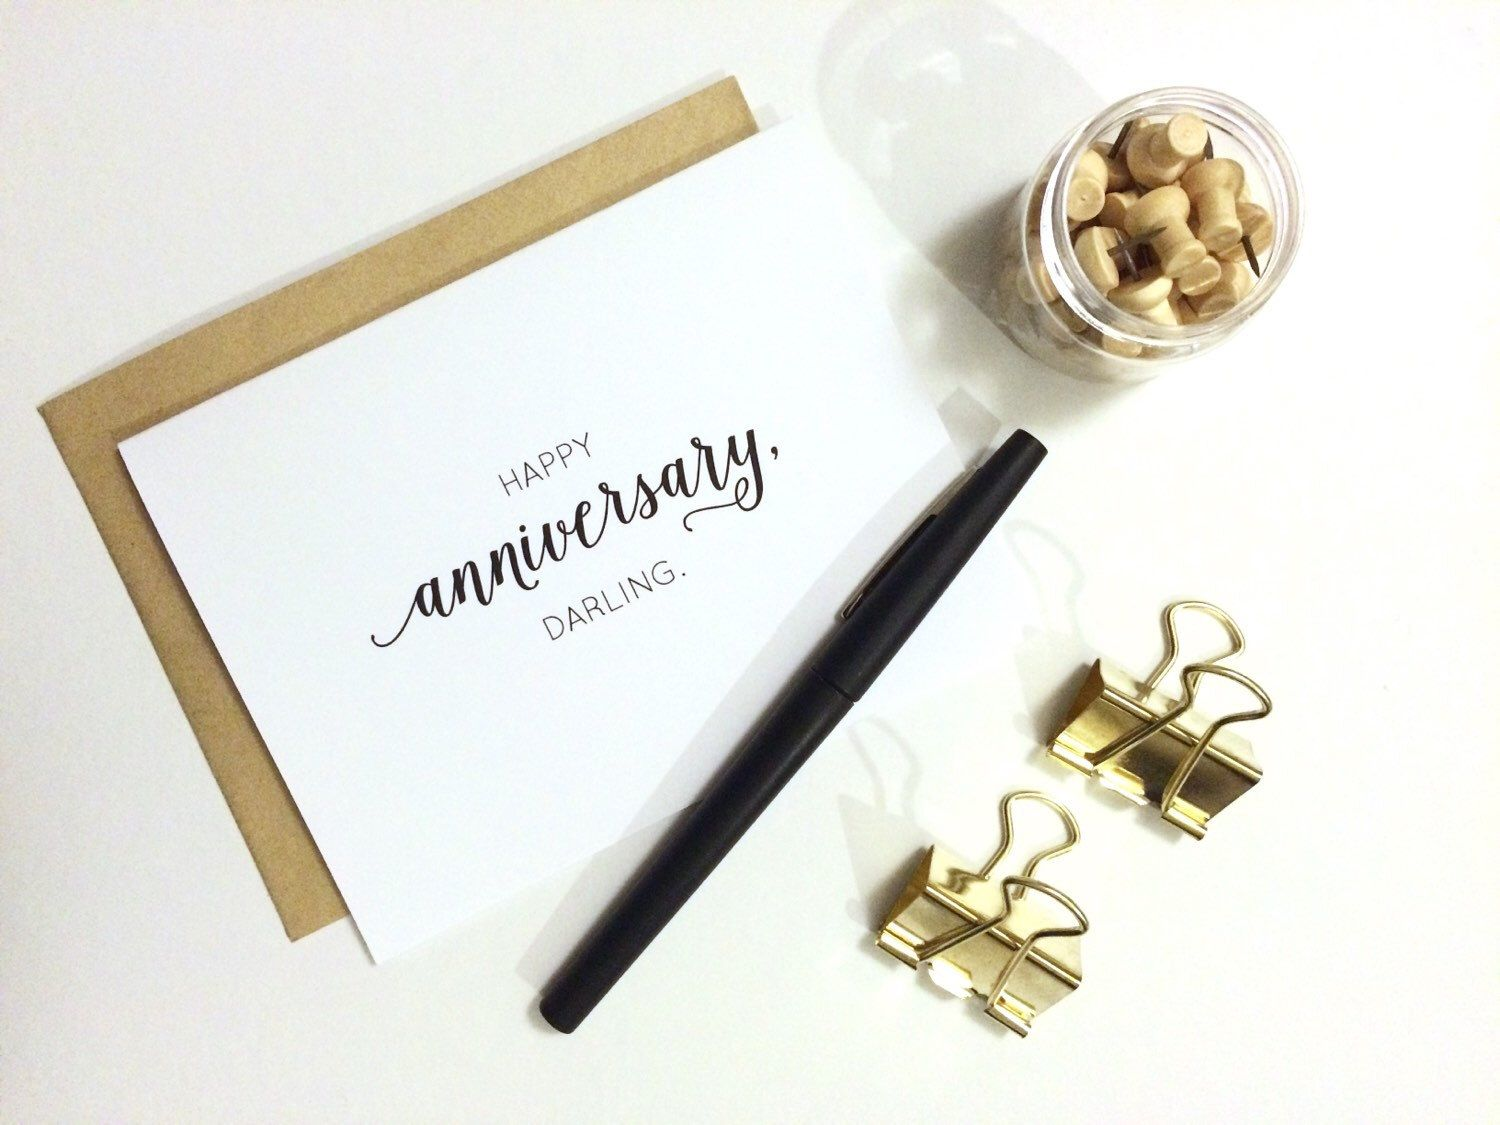 Happy anniversary darling. a modern calligraphy anniversary card